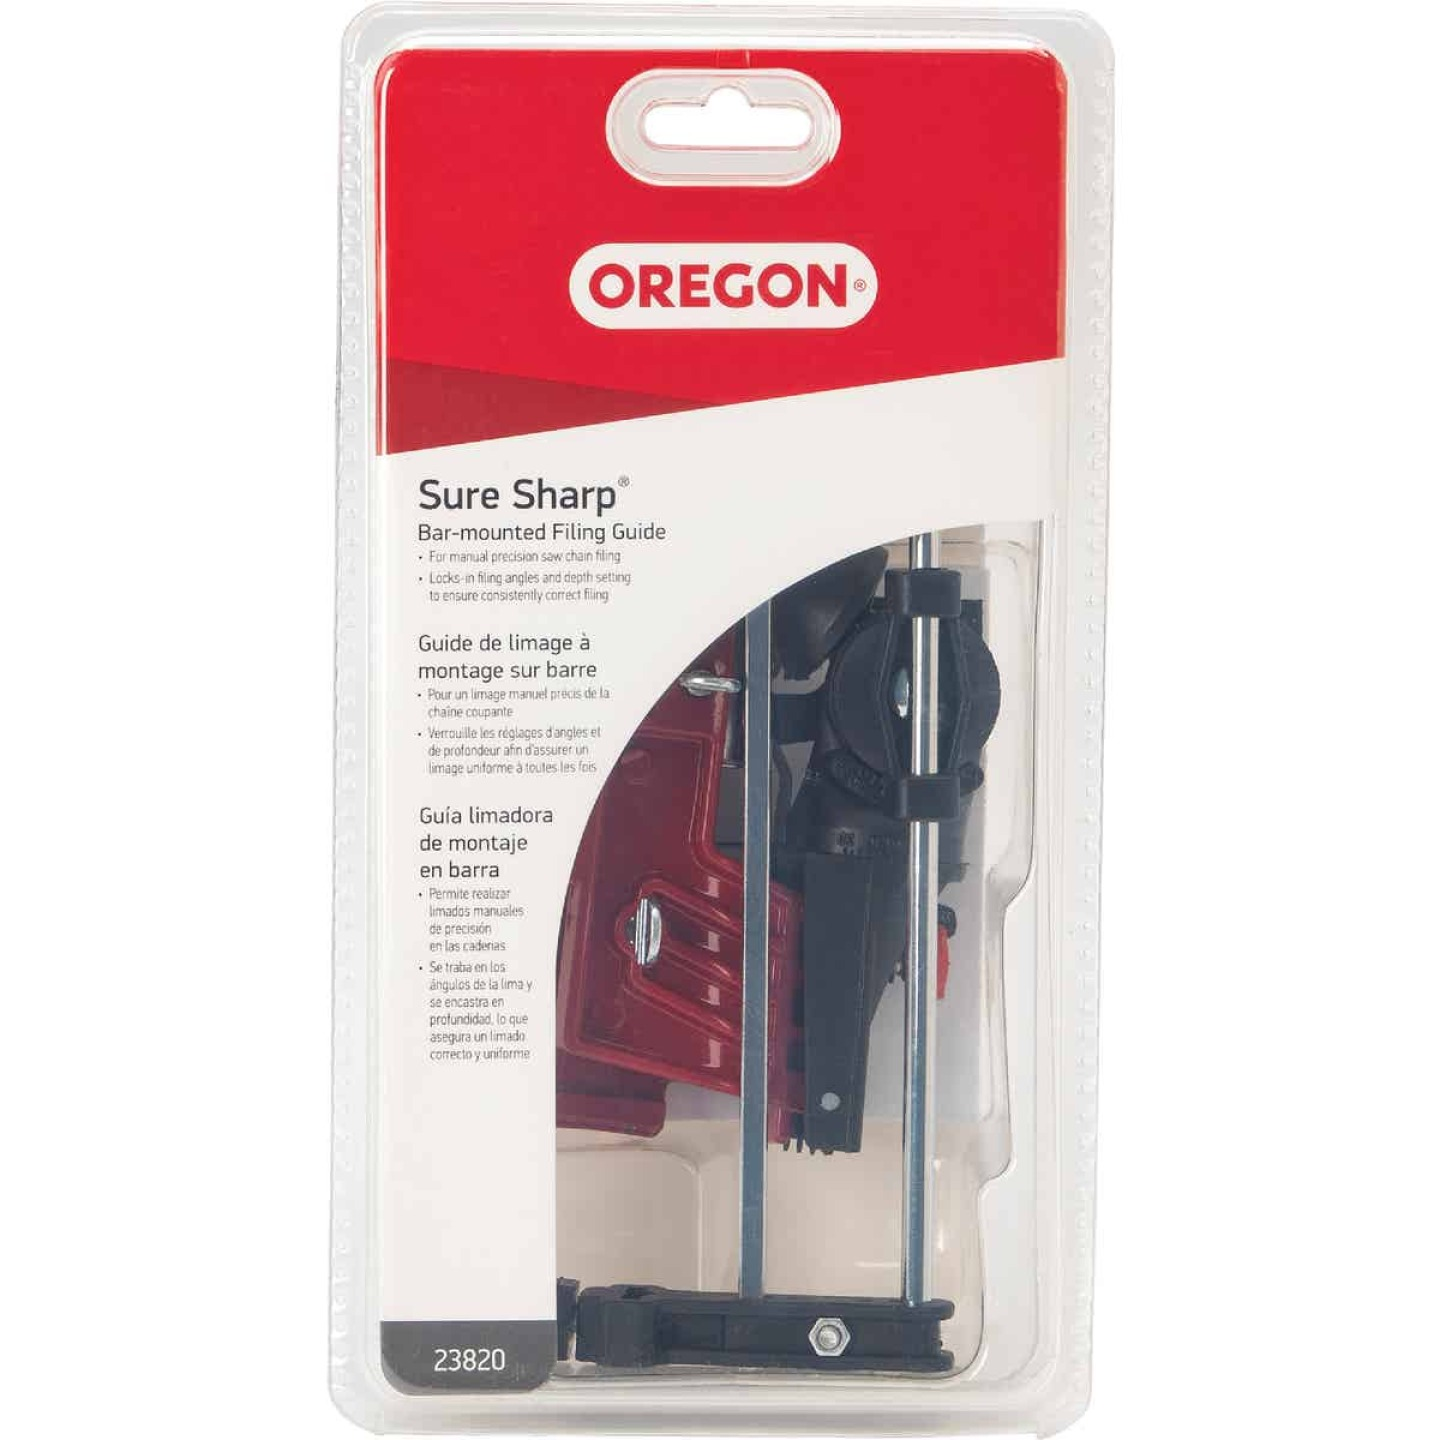 Oregon Sure Sharp Saw Chain Sharpener Image 1